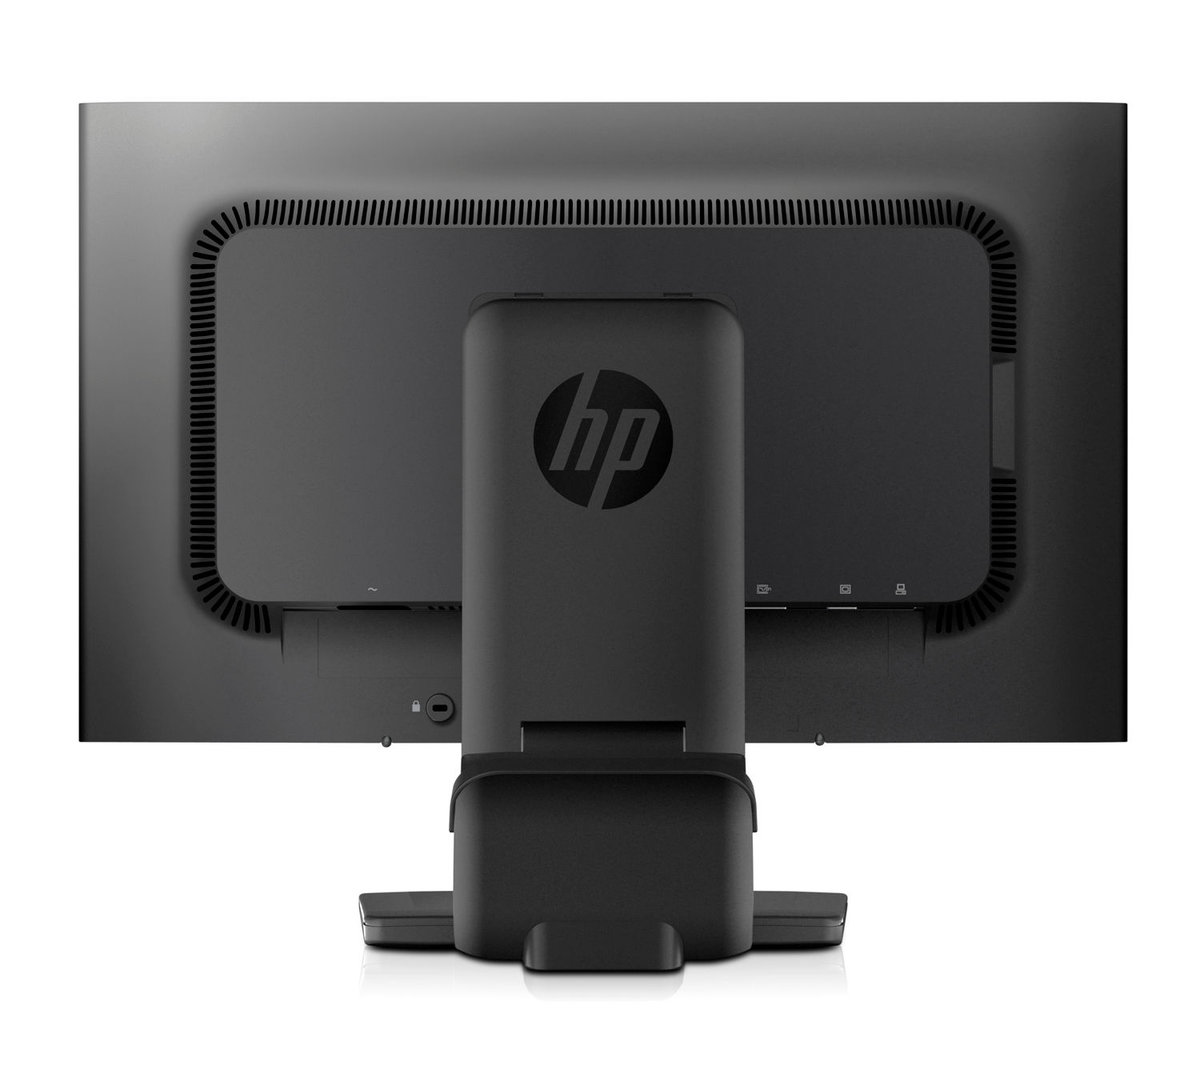 "HP TFT LA2206xc 21.5"" LED LCD Monitor(250cd/m,1000:1,5ms,170°/160°,VGA,DVI-D,DisplayPort,HDCP support, USB,1920x1080,EPEAT Gold)_DEMO"